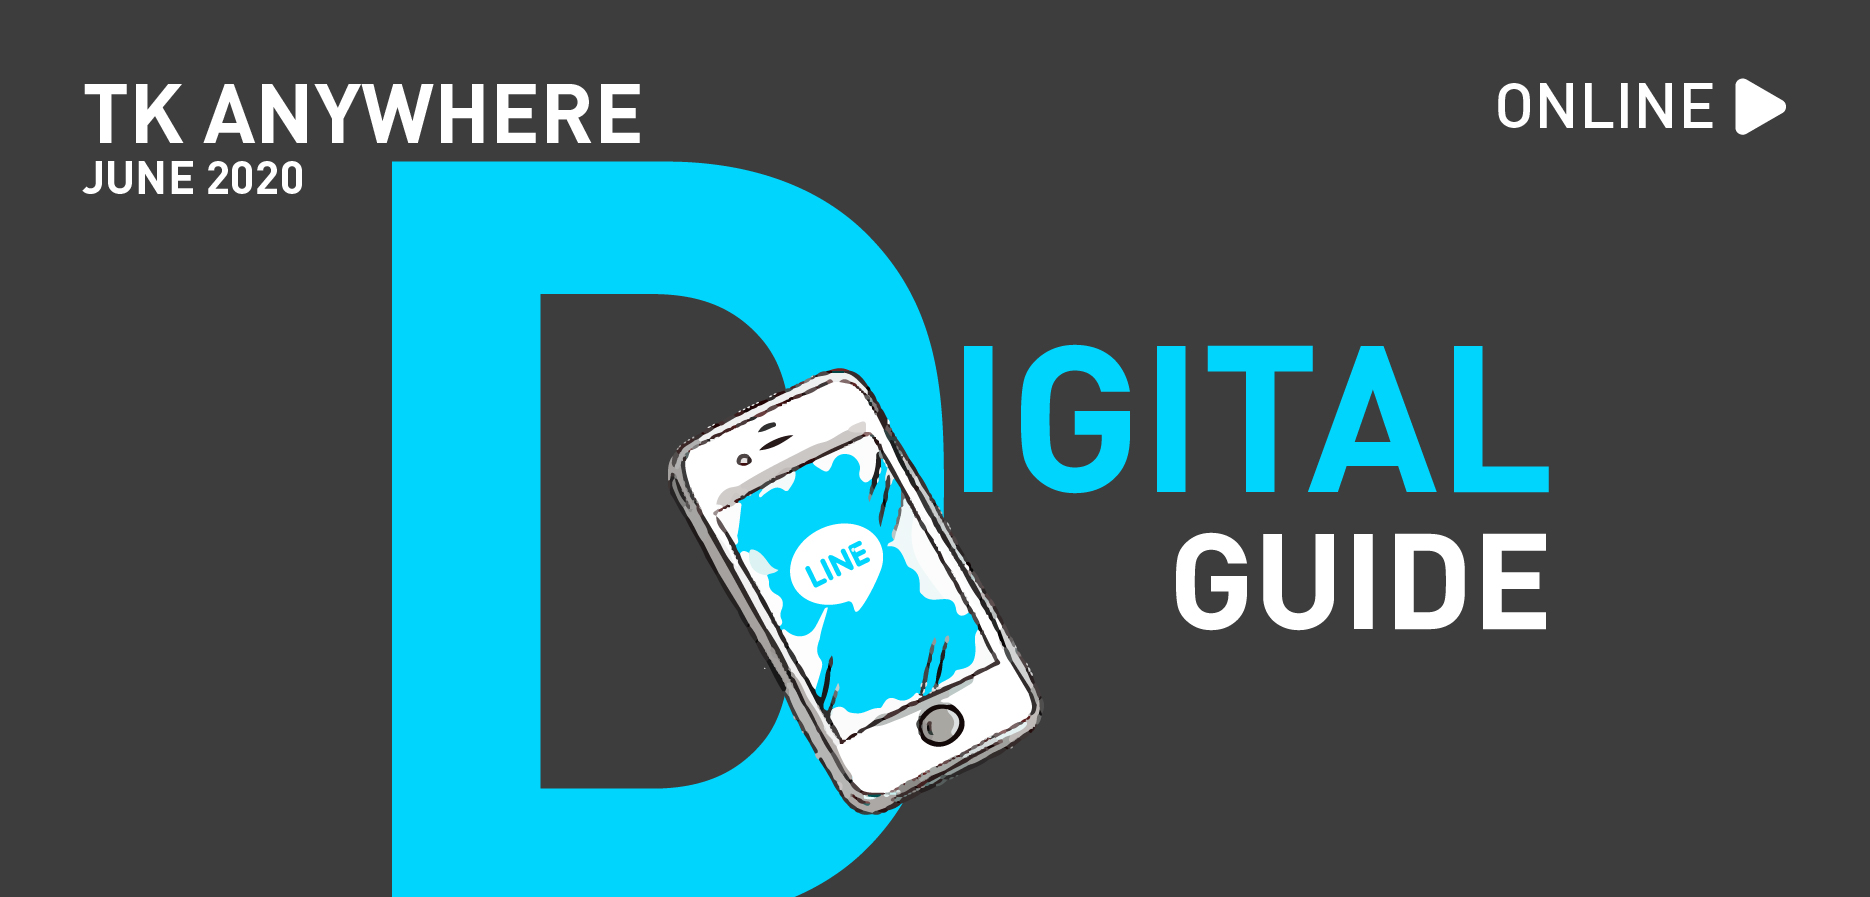 01_DigitalGuide.jpg